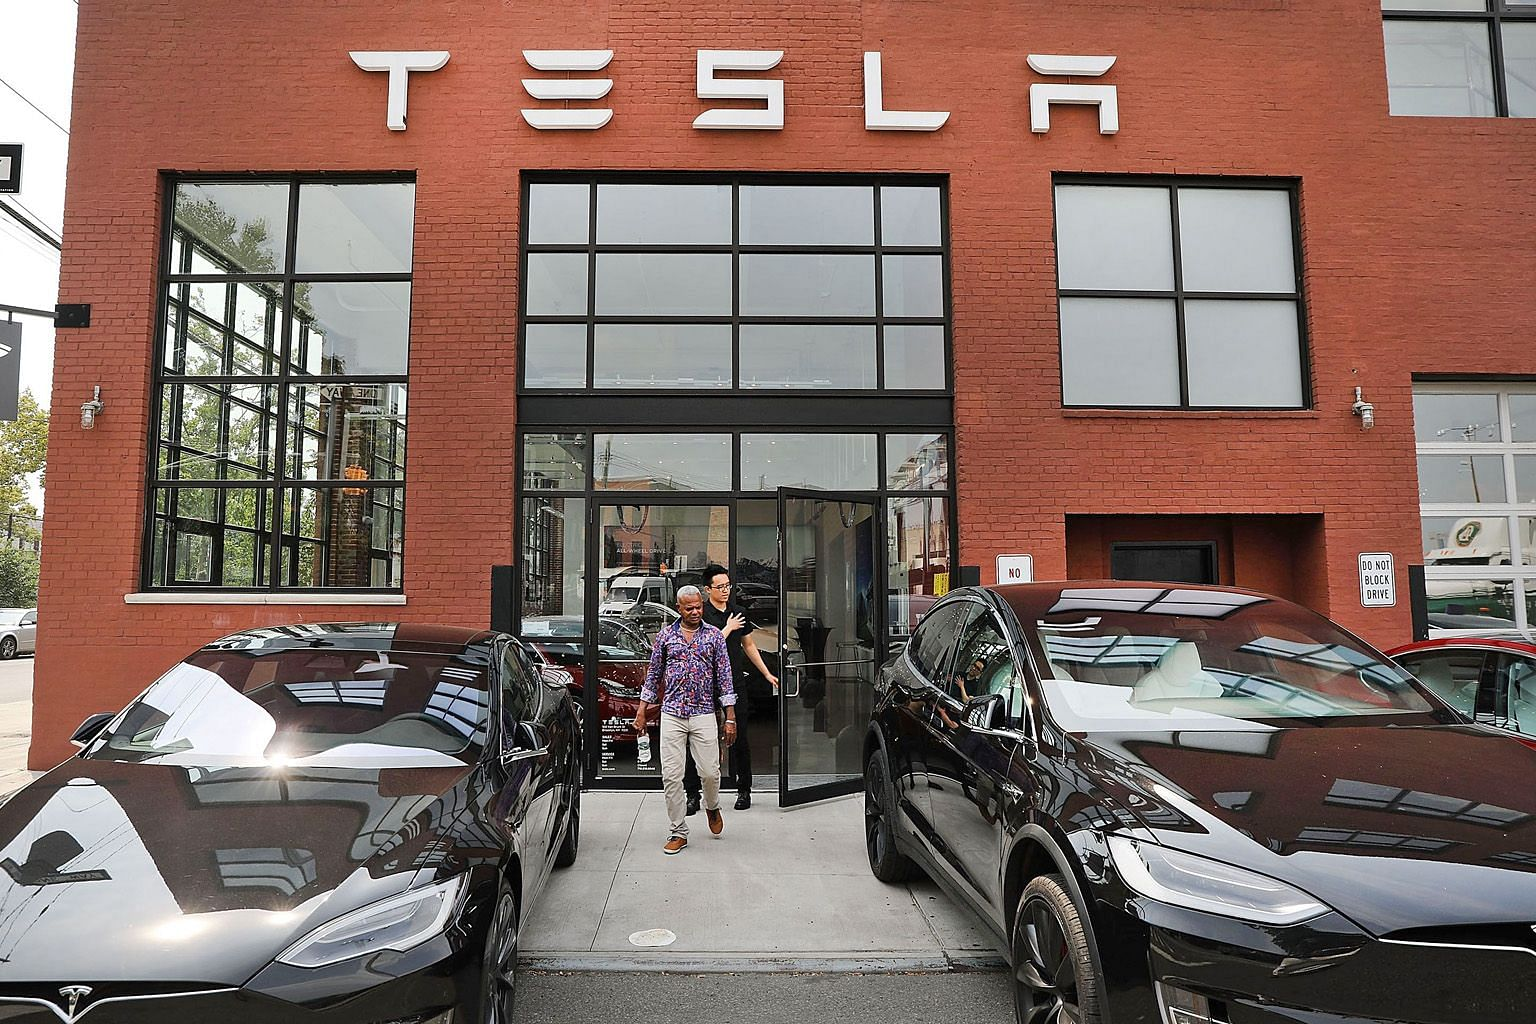 A Tesla showroom in New York City. Tesla has never earned a profit or produced a positive cash flow, yet investors believe it is worth over US$55 billion (S$75 billion). Investors believe in the future of the company, but it is likely that they also